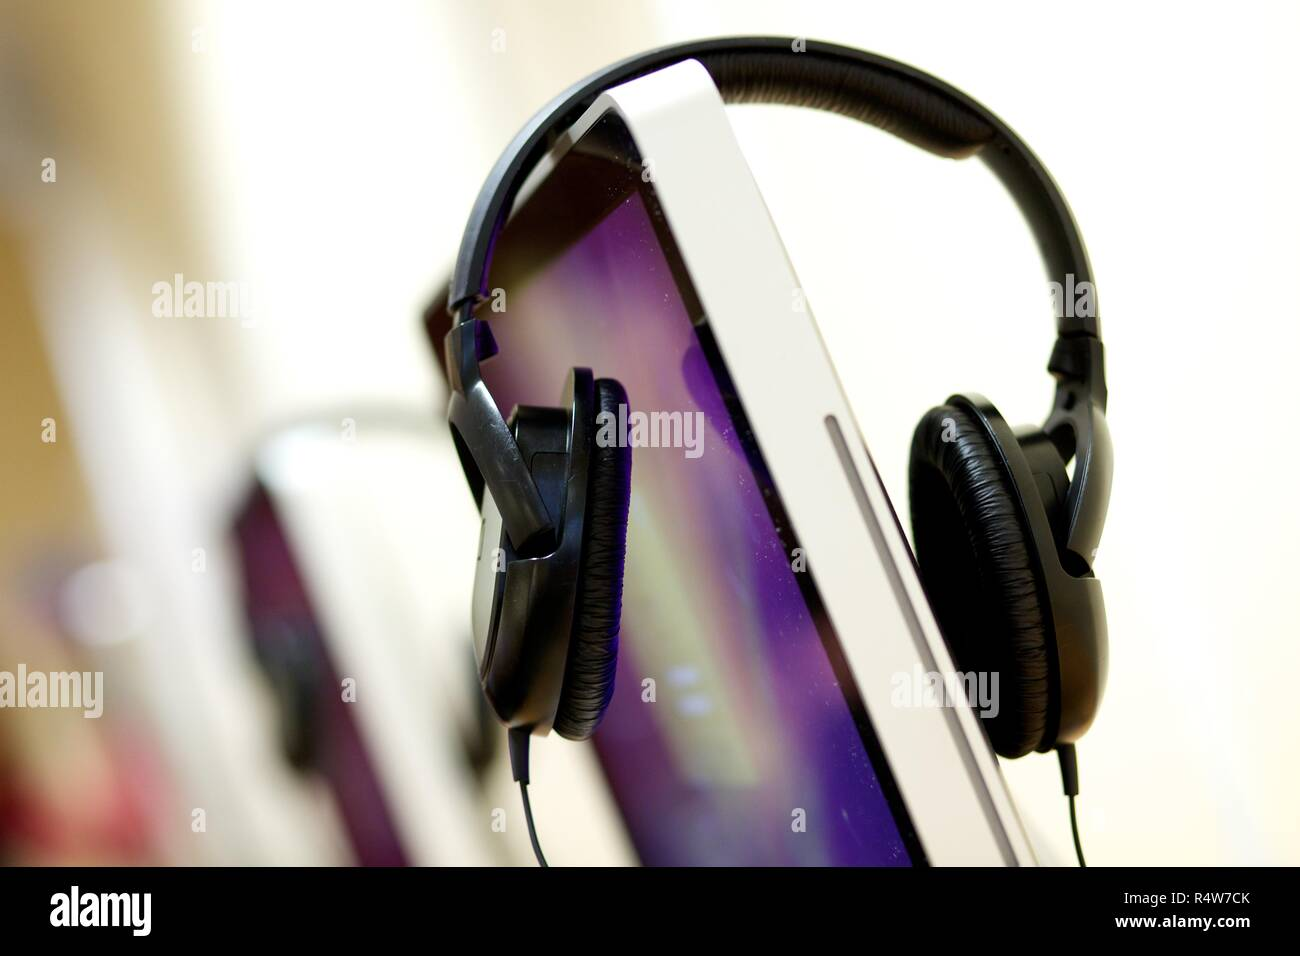 Headphones and desktop computer Stock Photo